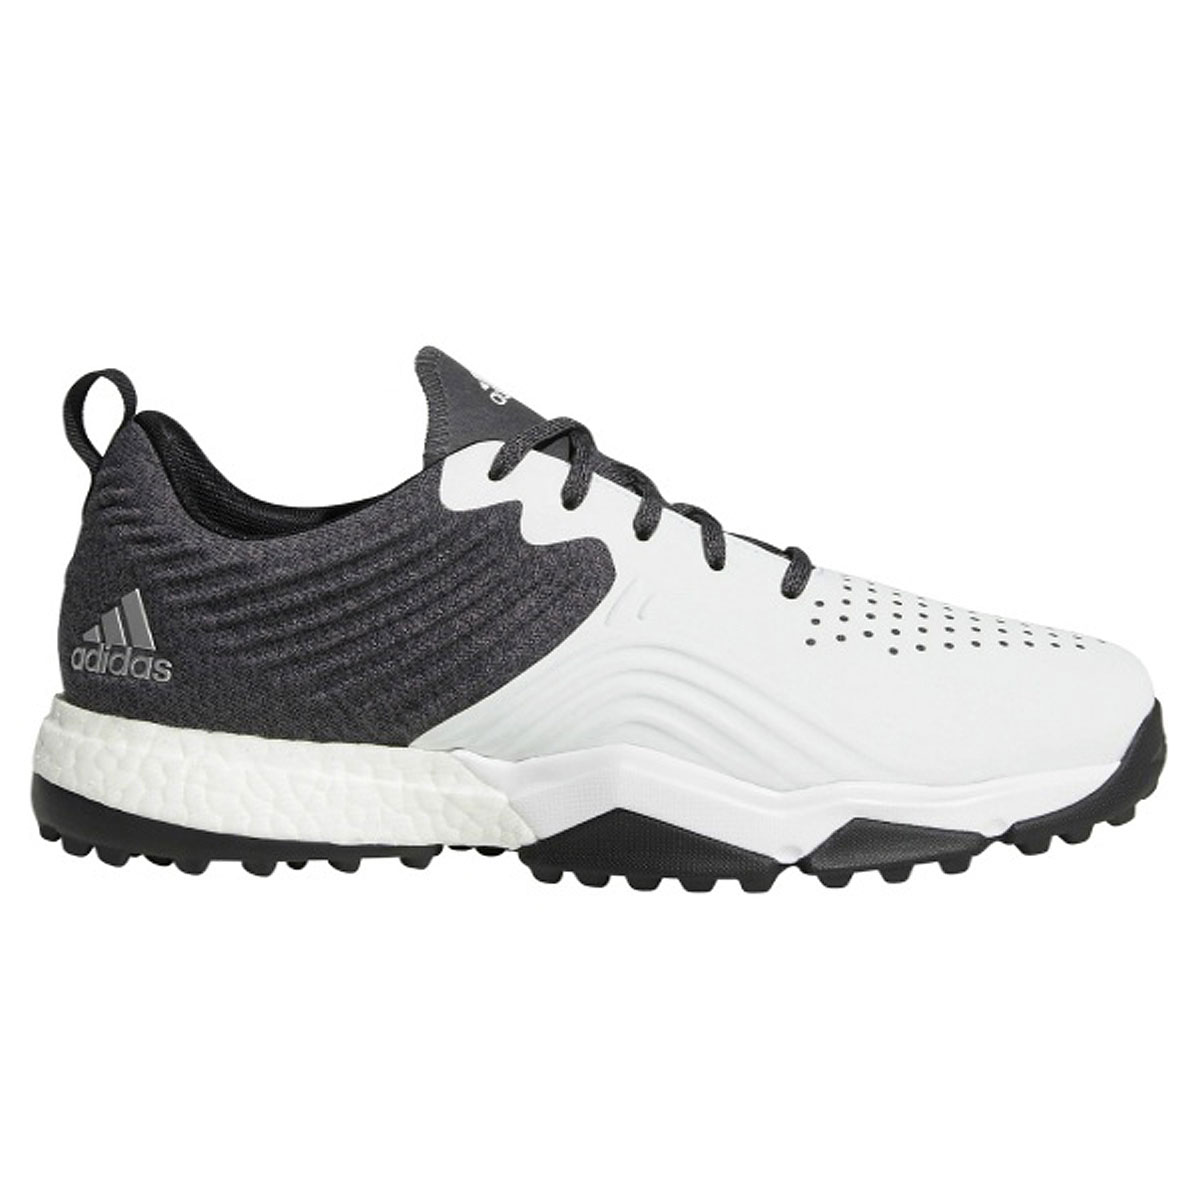 Adidas Golf Homme 2018 Adipower 4 Chaussures orged Crampons Boost Stretch Chaussures 4 de golf bdecab